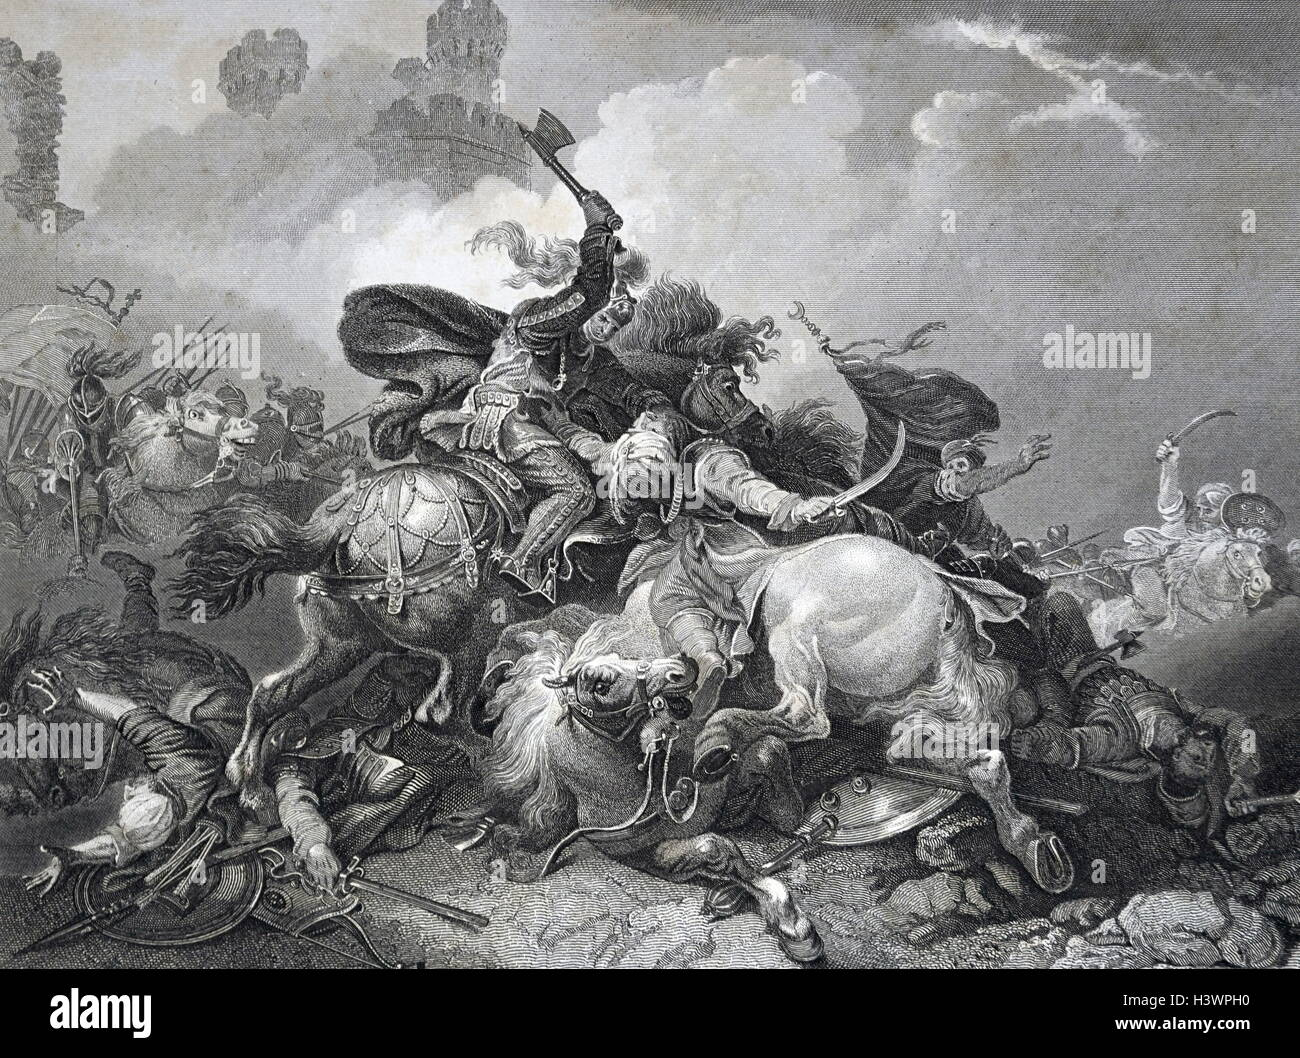 Painting depicting King Richard I in Palestine during the King's Crusade - Stock Image